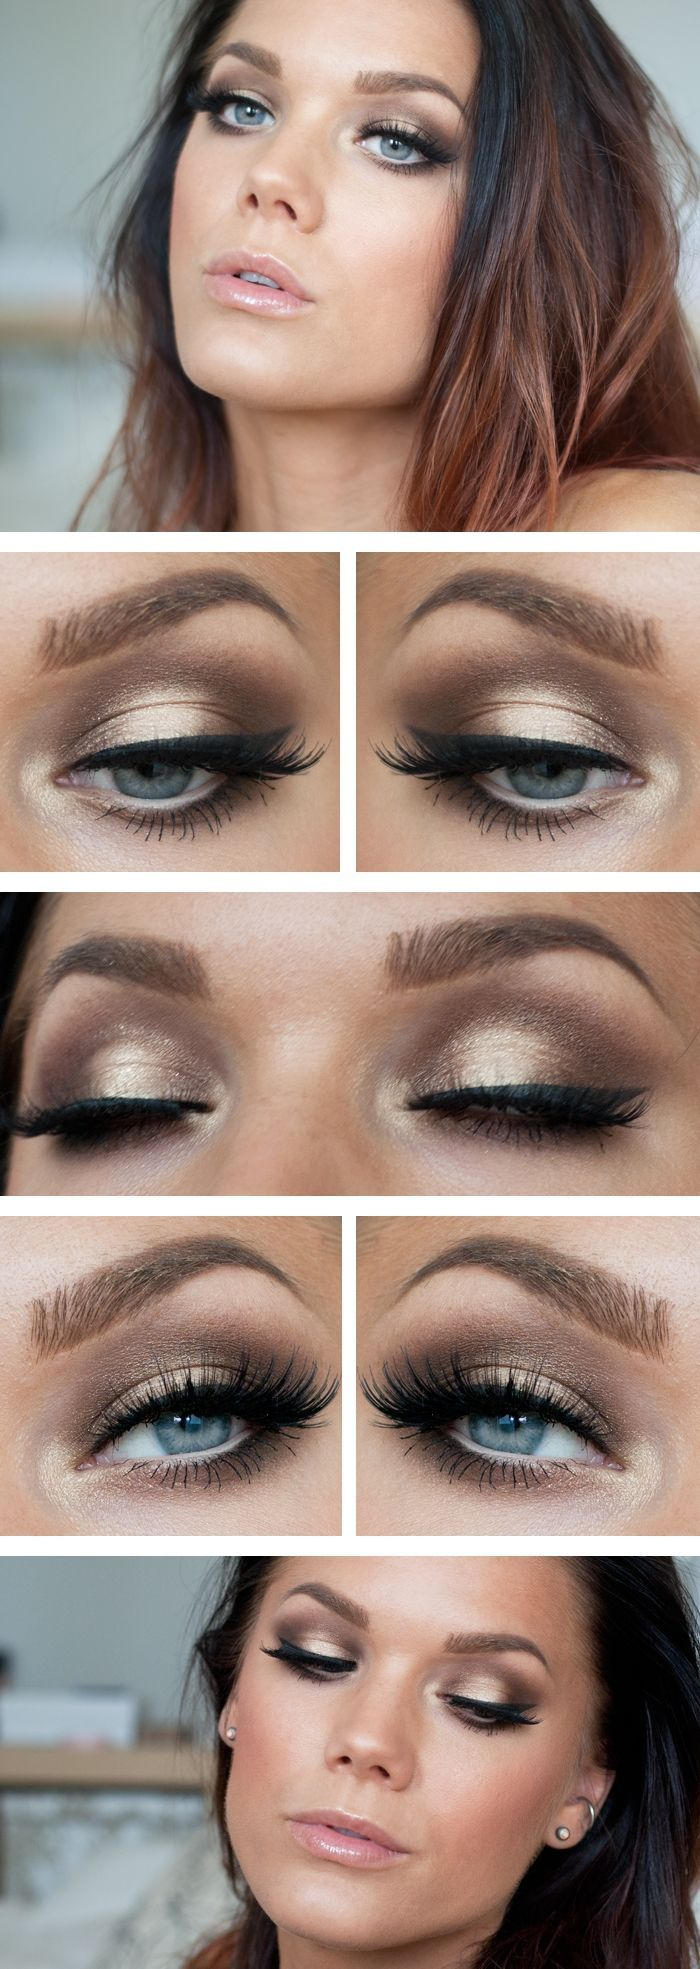 Best Make Up for Brunettes http://sulia.com/channel/beauty-spas/f/647fc2c1-5f72-4d84-8acf-ada6648d577b/?pinner=125511453&